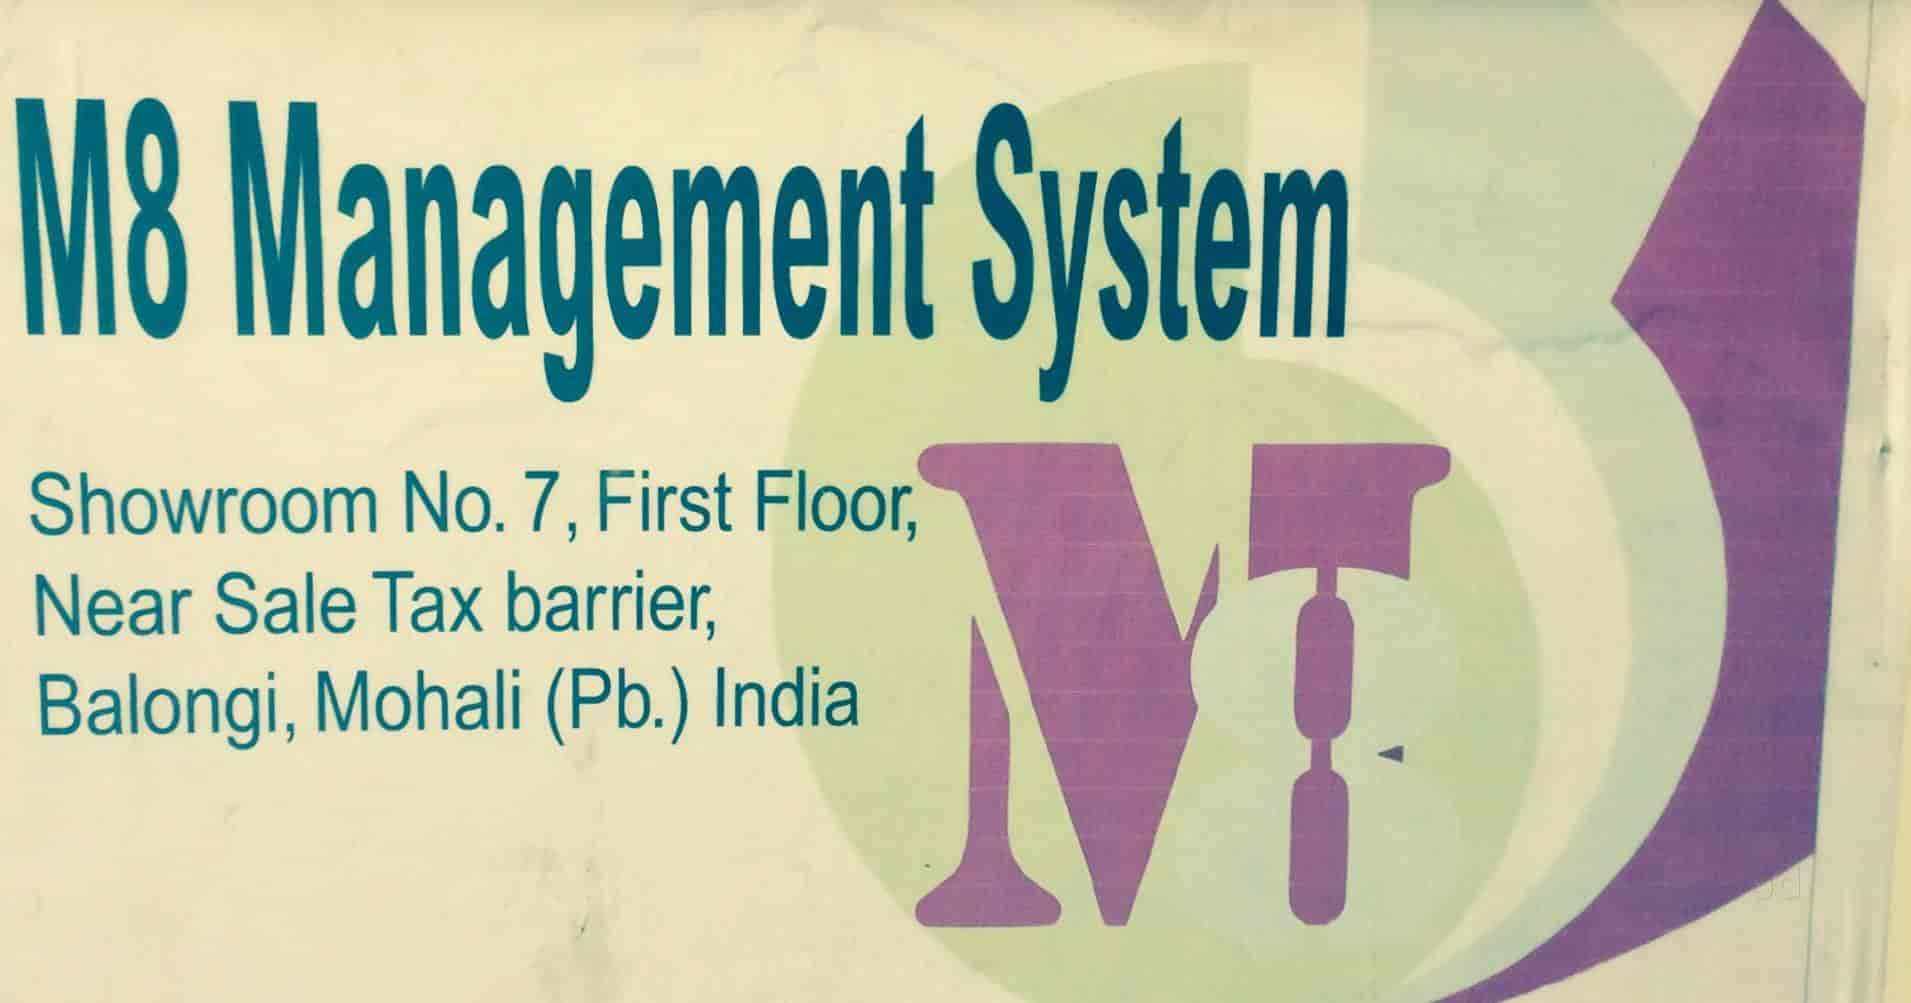 event management thesis In event management, that encompass corporate events, social events and wedding planning and early-stage job seekers who aspire to build careers as event managers, meeting planners, and.